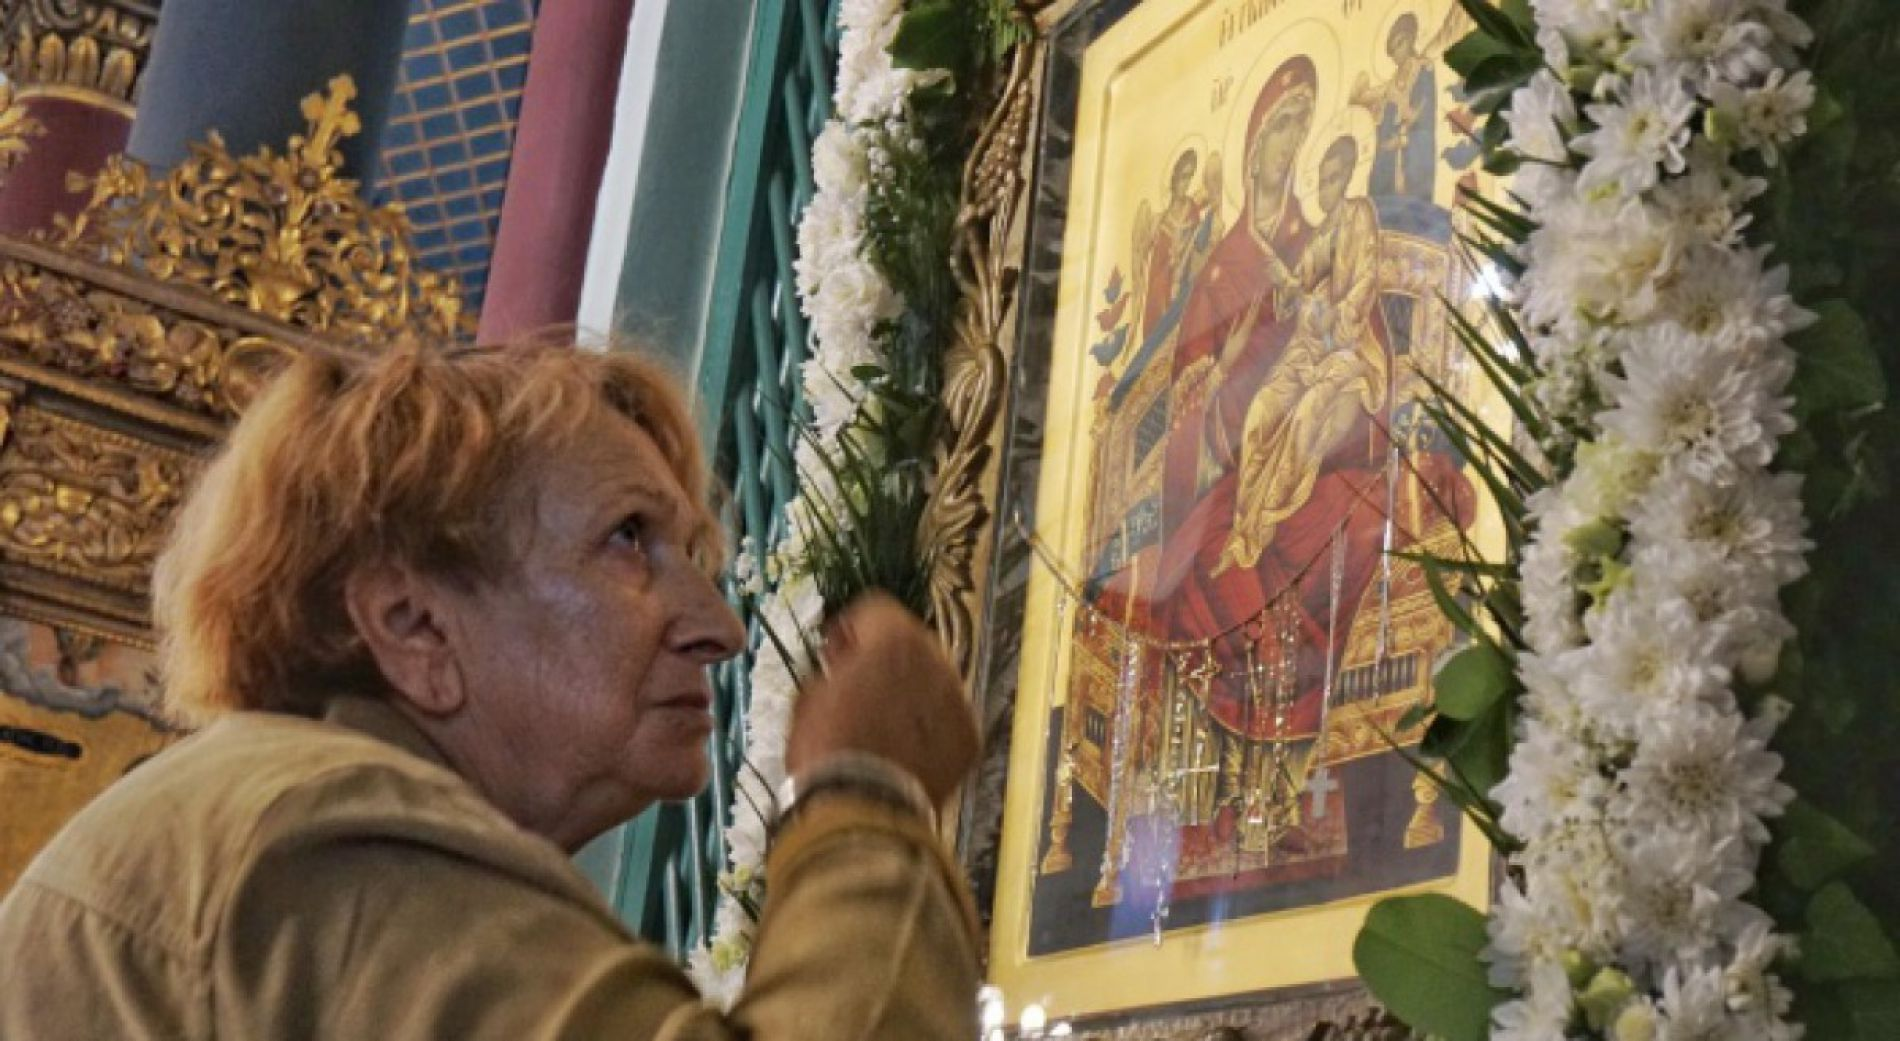 Residents of Varna worshiped the icon, which they consider miraculous